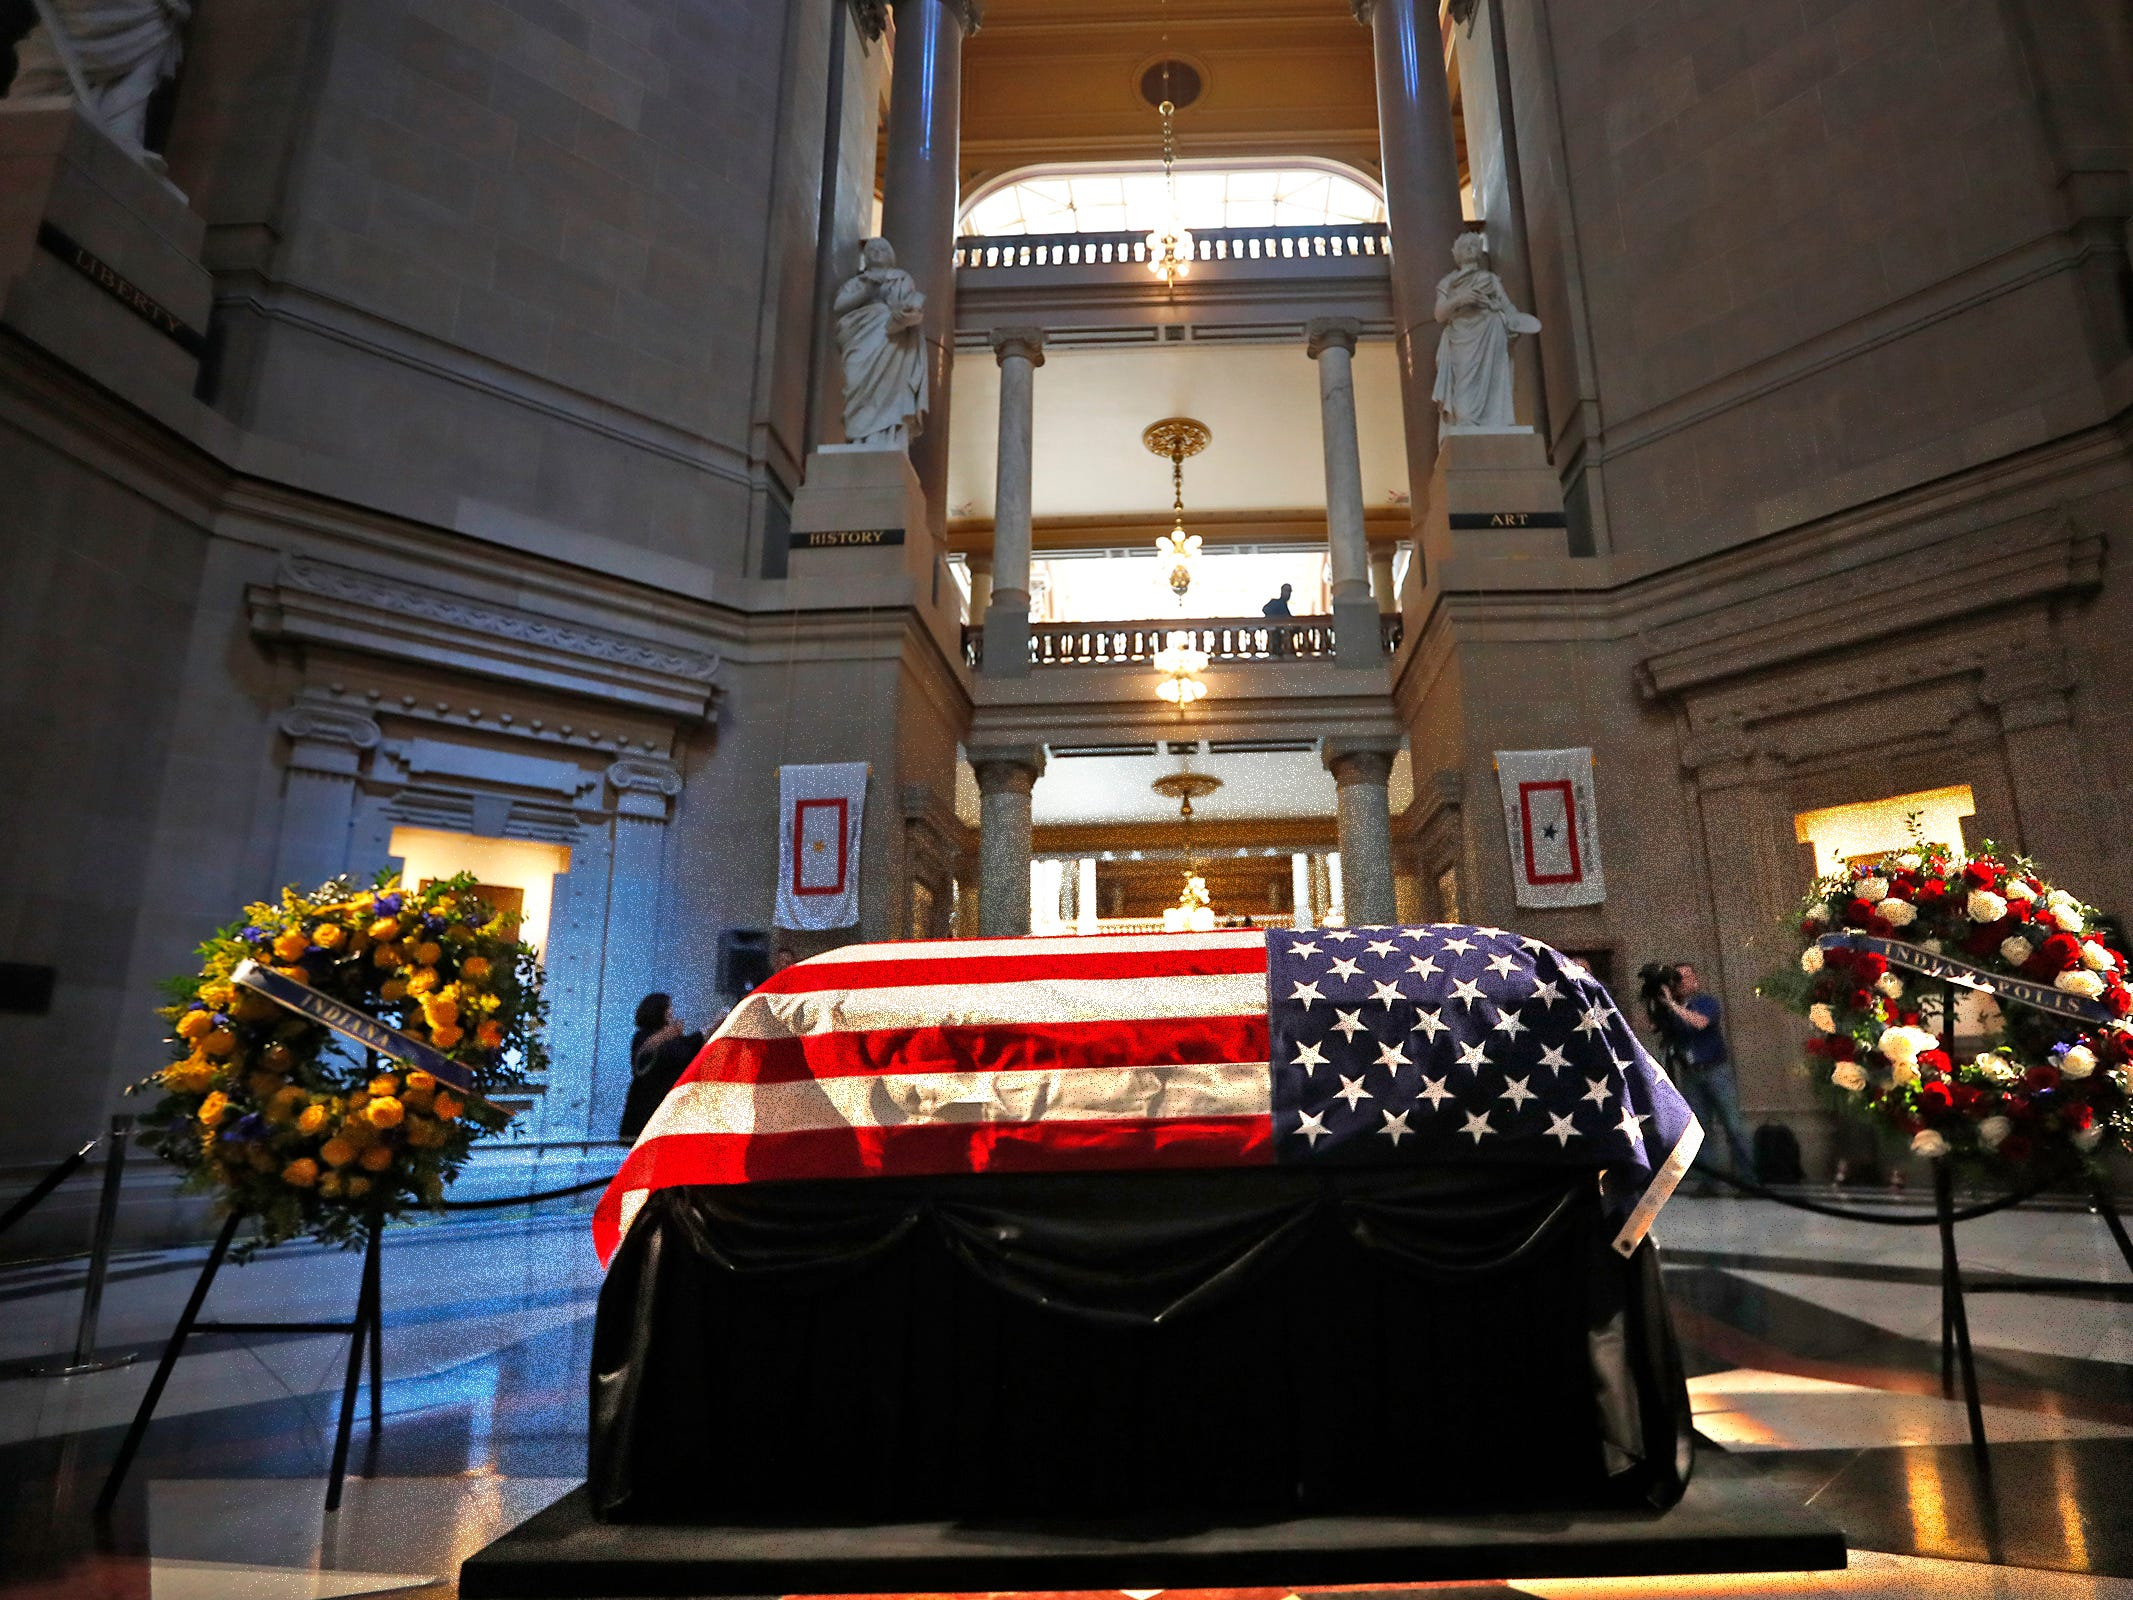 Former Senator and Mayor Richard Lugar lies in state under the Statehouse rotunda, Tuesday, May 14, 2019.